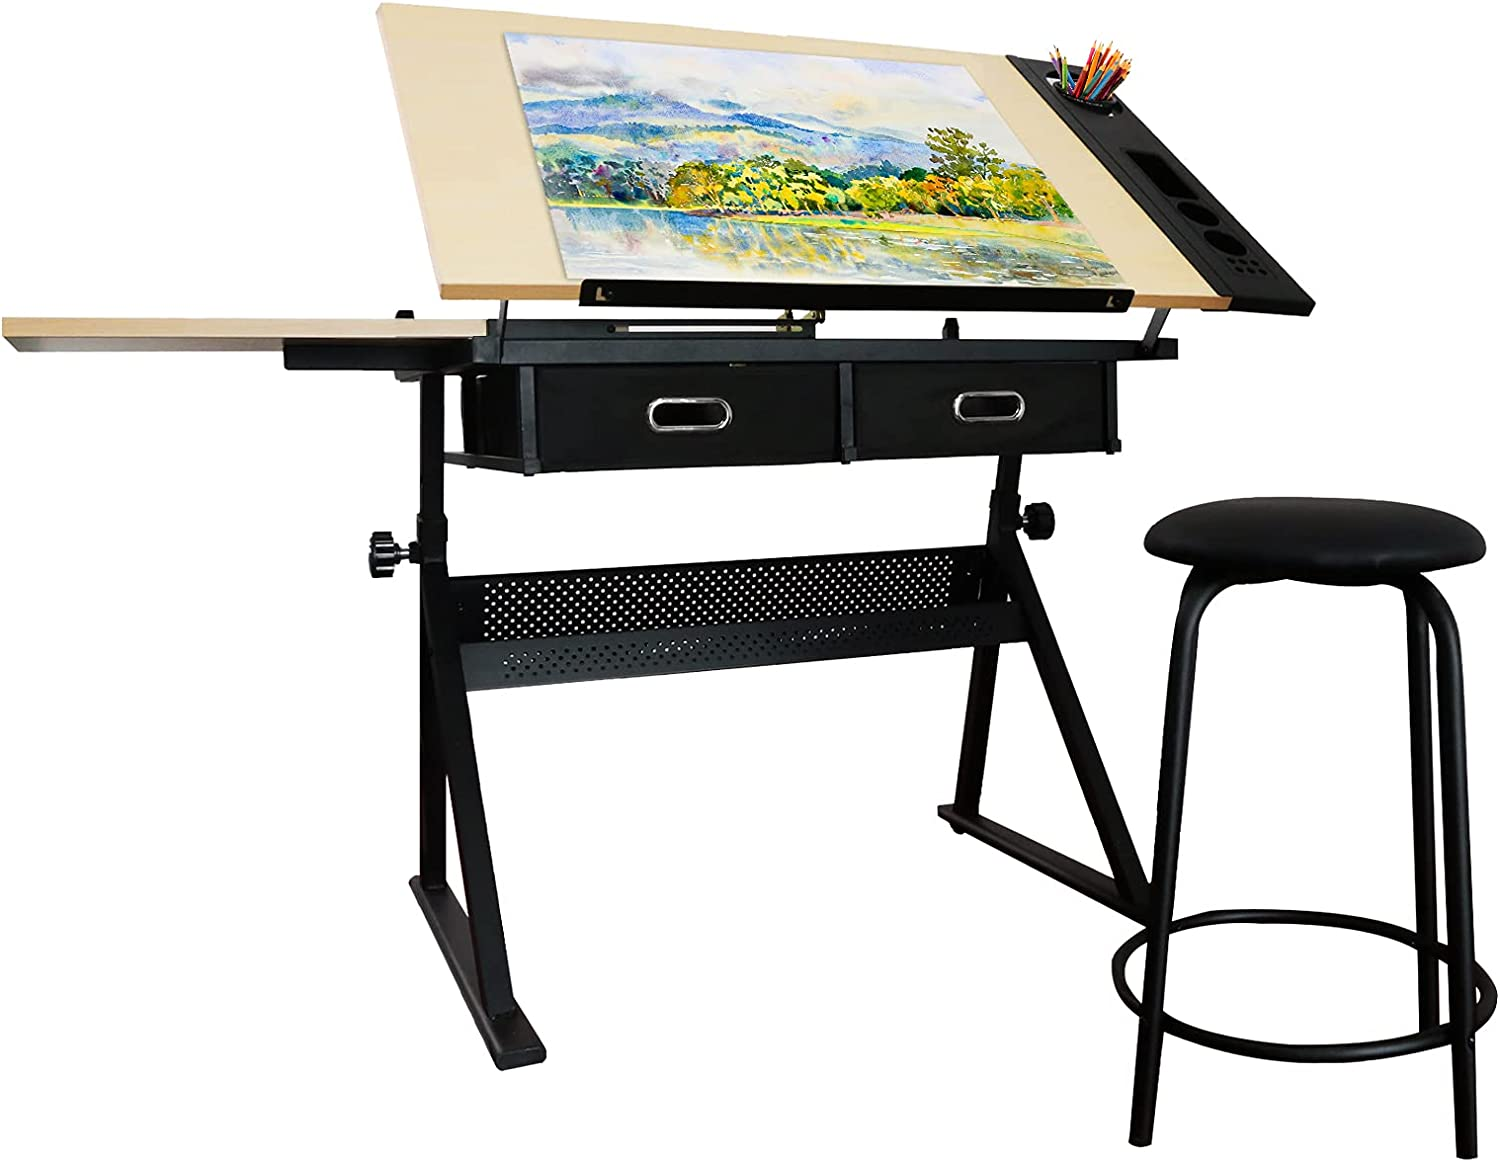 Height Spring new work one after another 2021 spring and summer new Adjustable Drafting Draft Drawing Tiltabl Table Desk